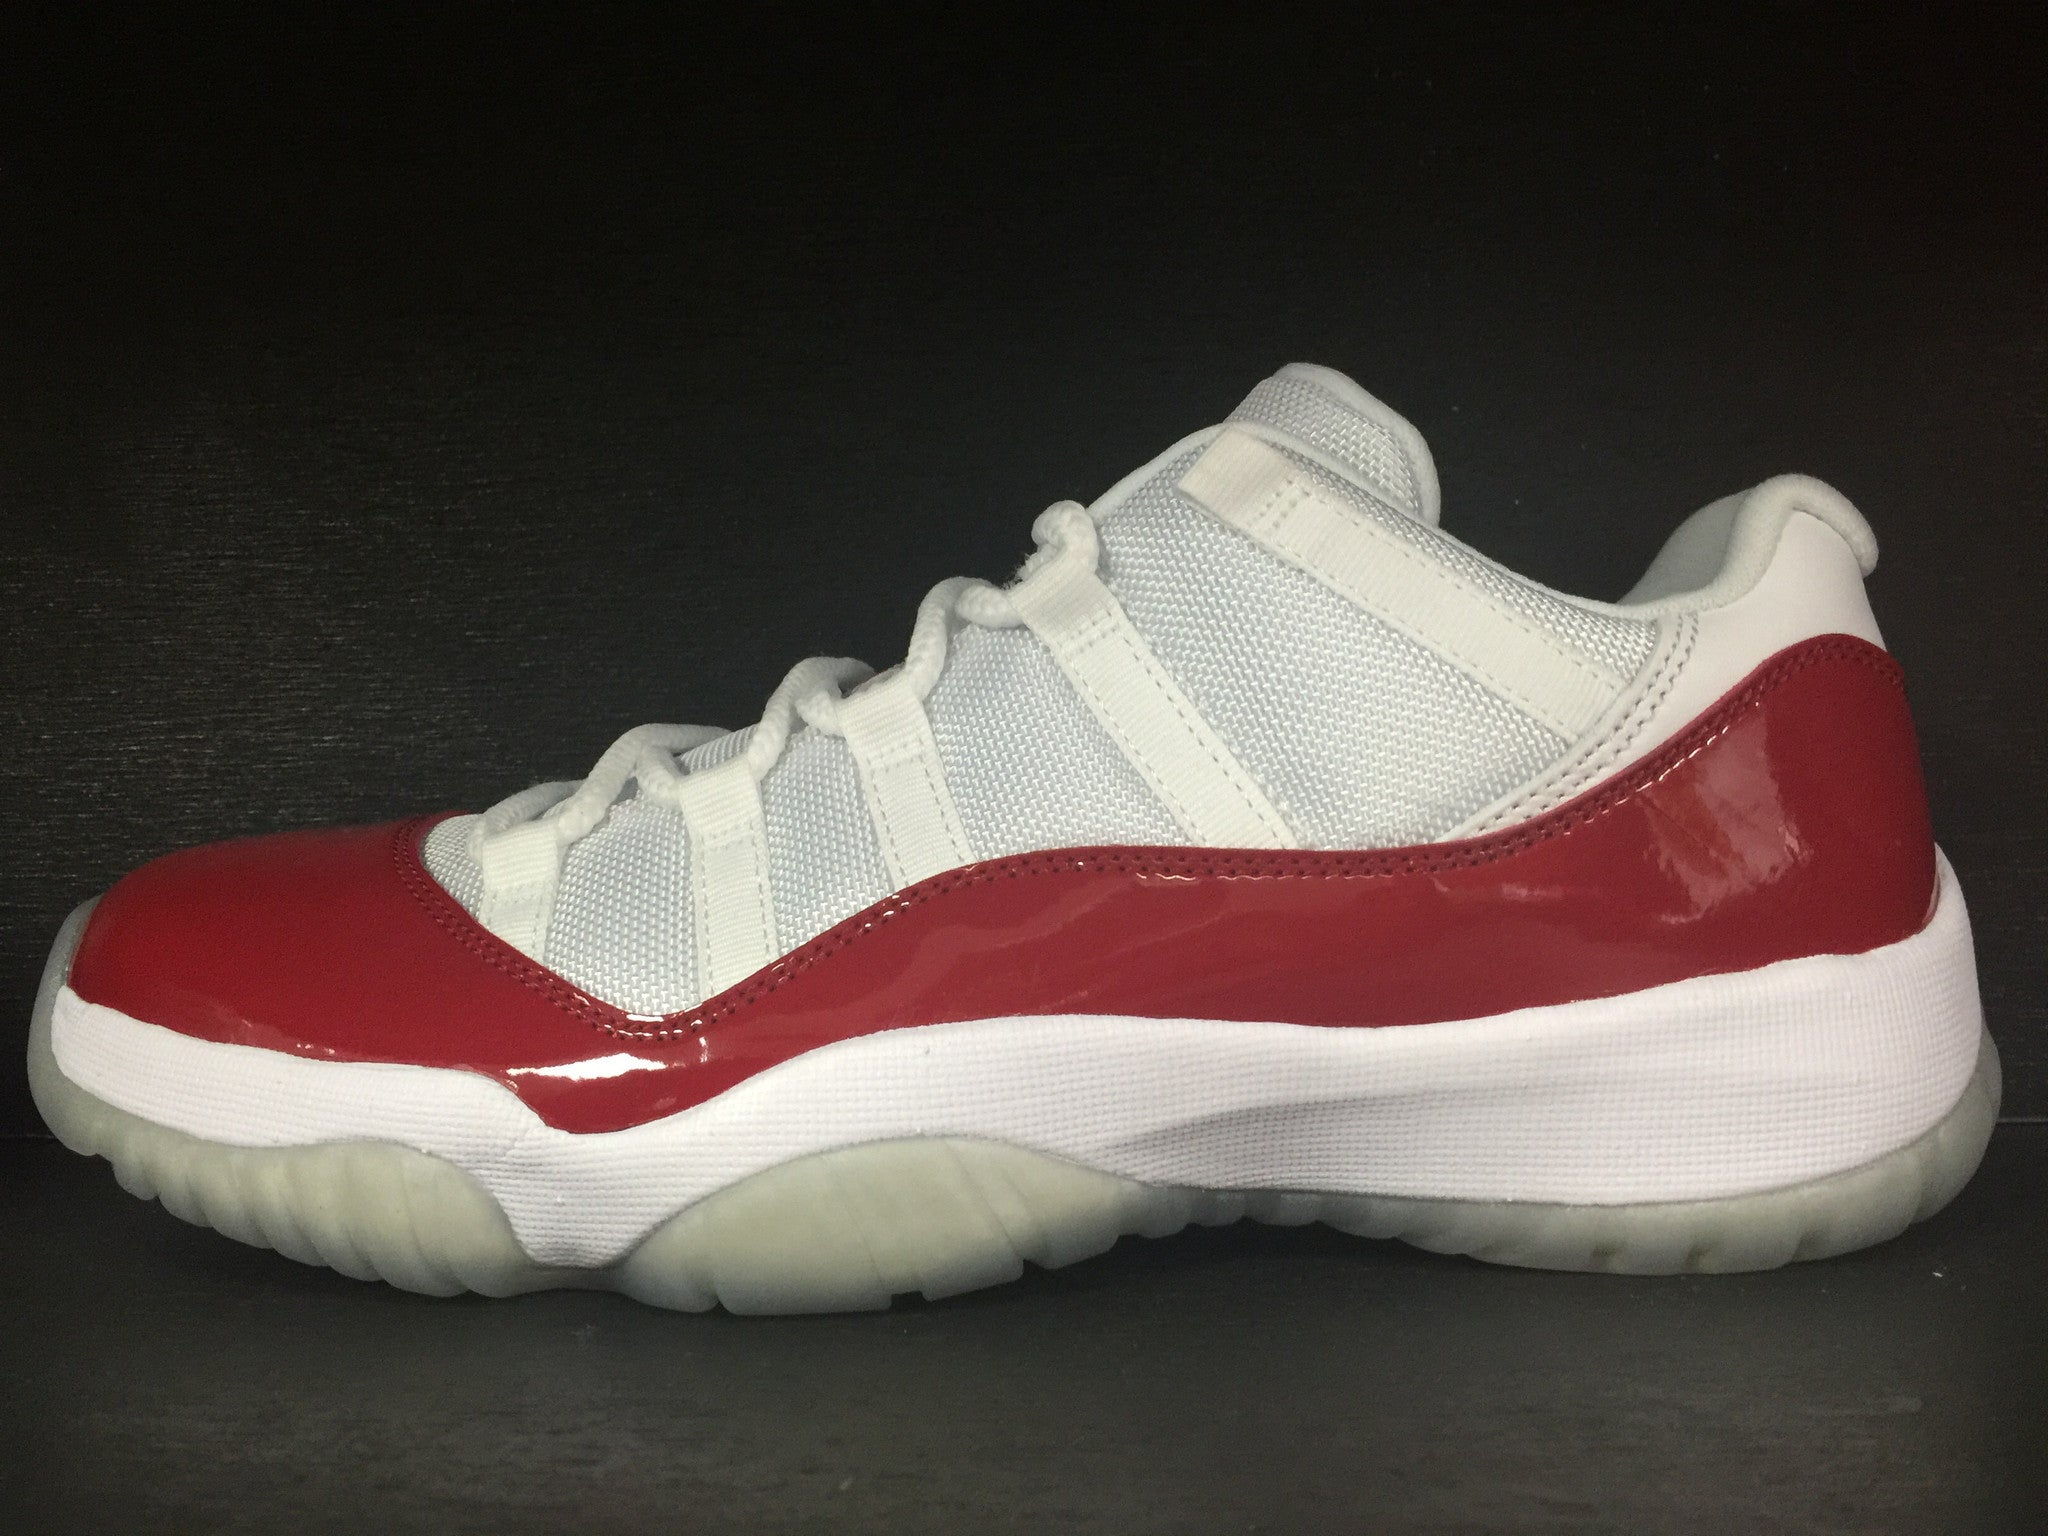 Air Jordan 11 Retro Low 'Varsity Red'